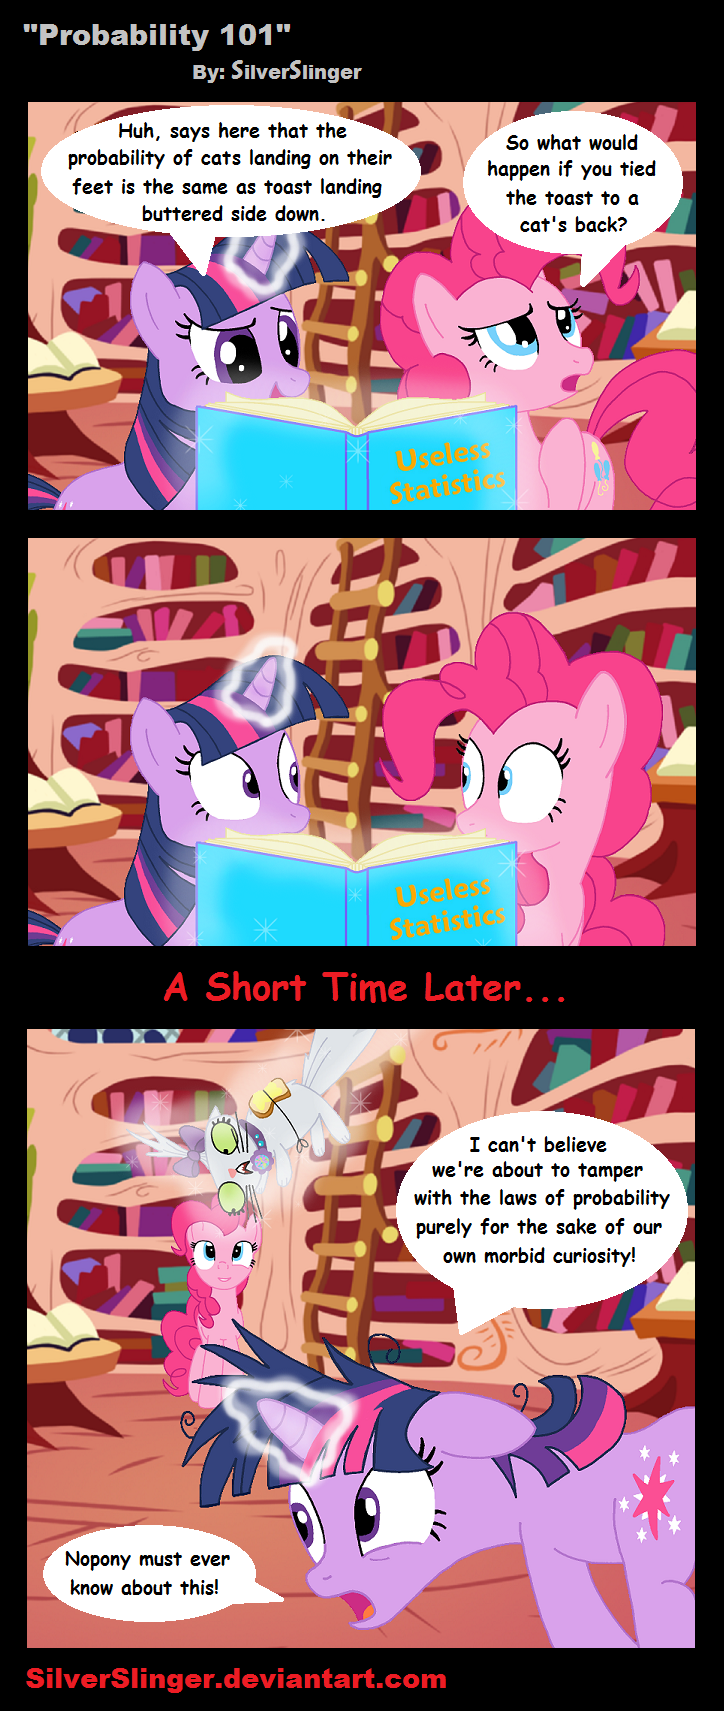 Probability 101 by SilverSlinger